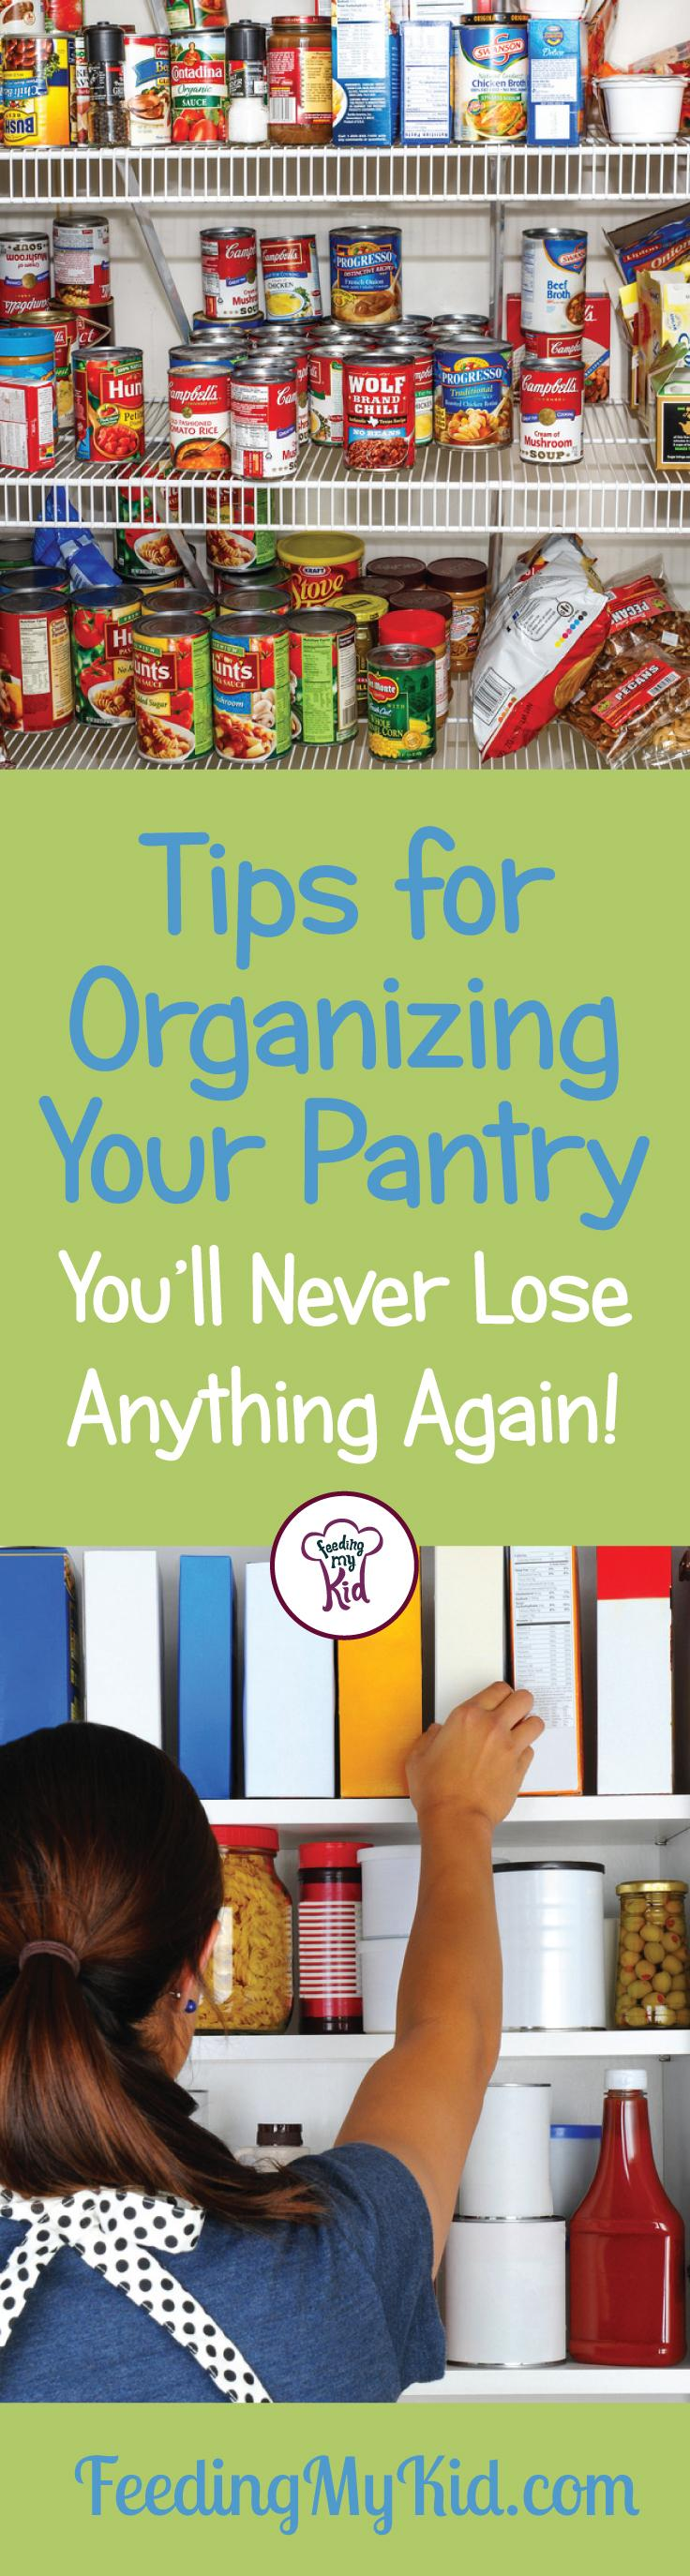 Tired of having to keep on reorganizing your pantry? With these helpful tips, you'll be able to organize pantry items more efficiently and keep it that way.